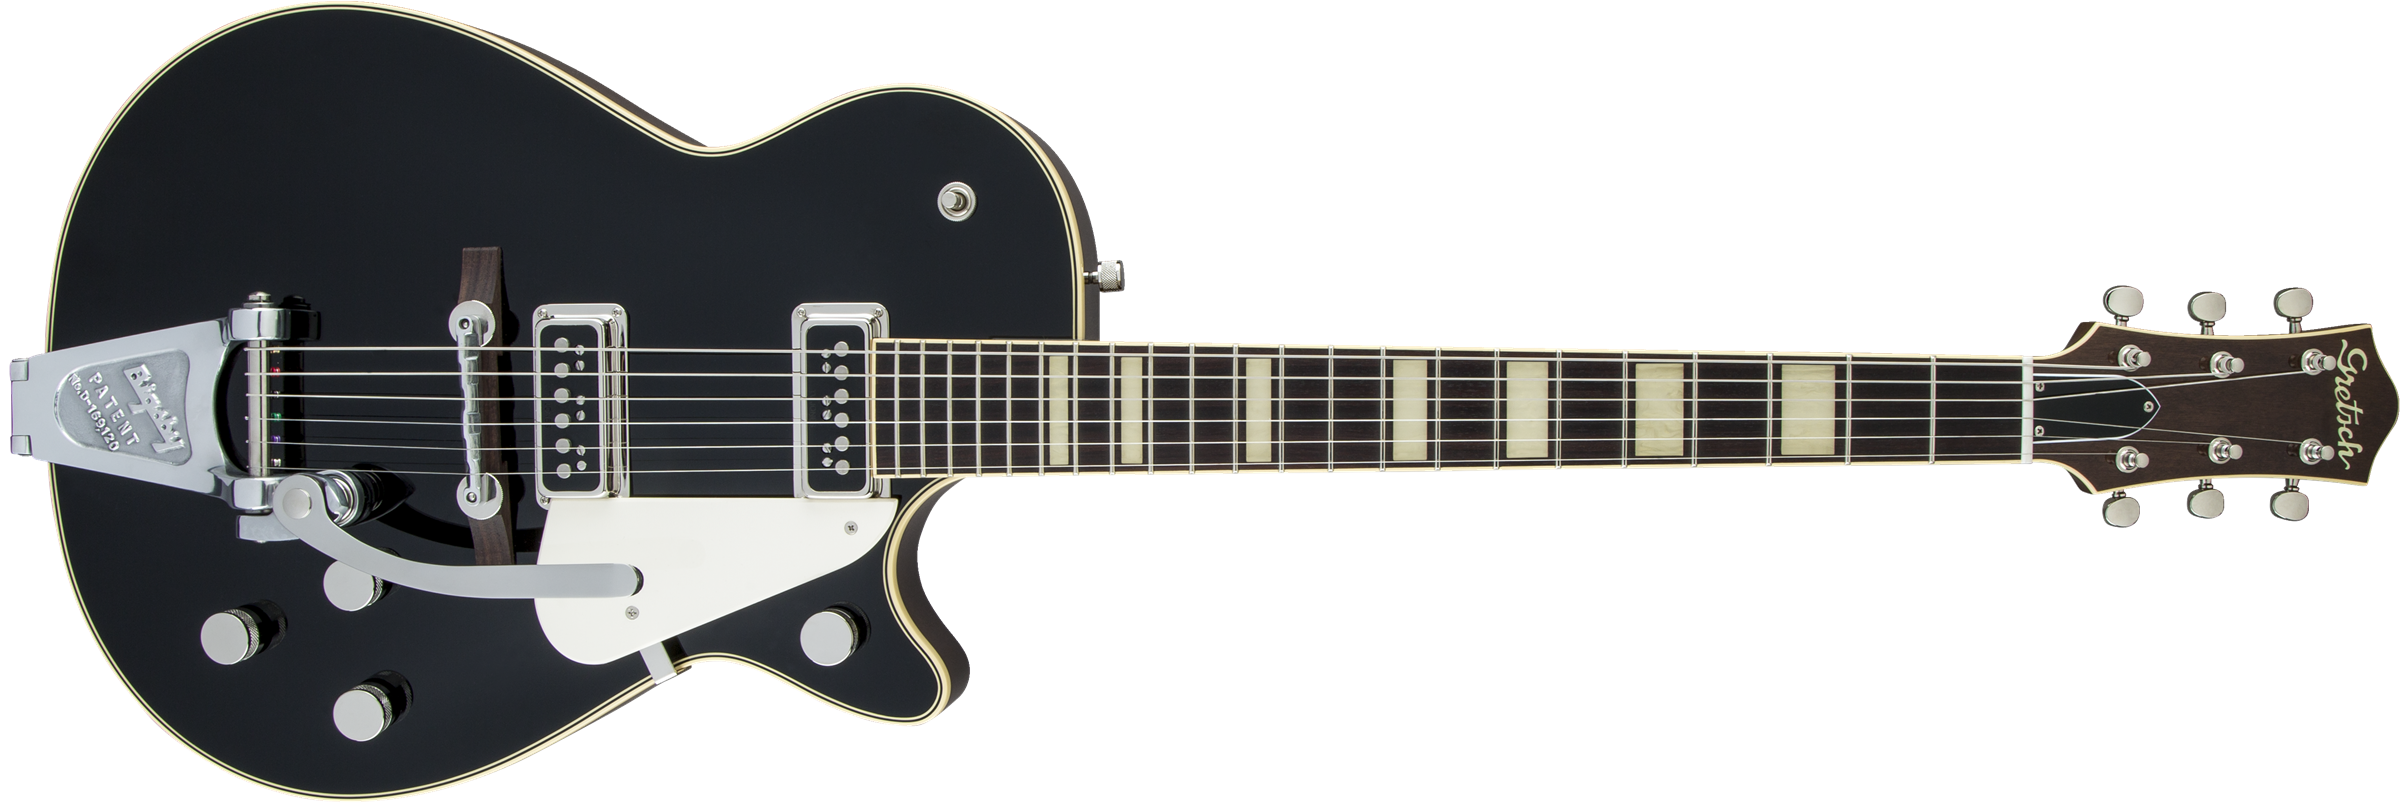 GRETSCH-G6128T-53-Vintage-Select-53-Duo-Jet-with-Bigsby-TV-Jones-Black-sku-571001215